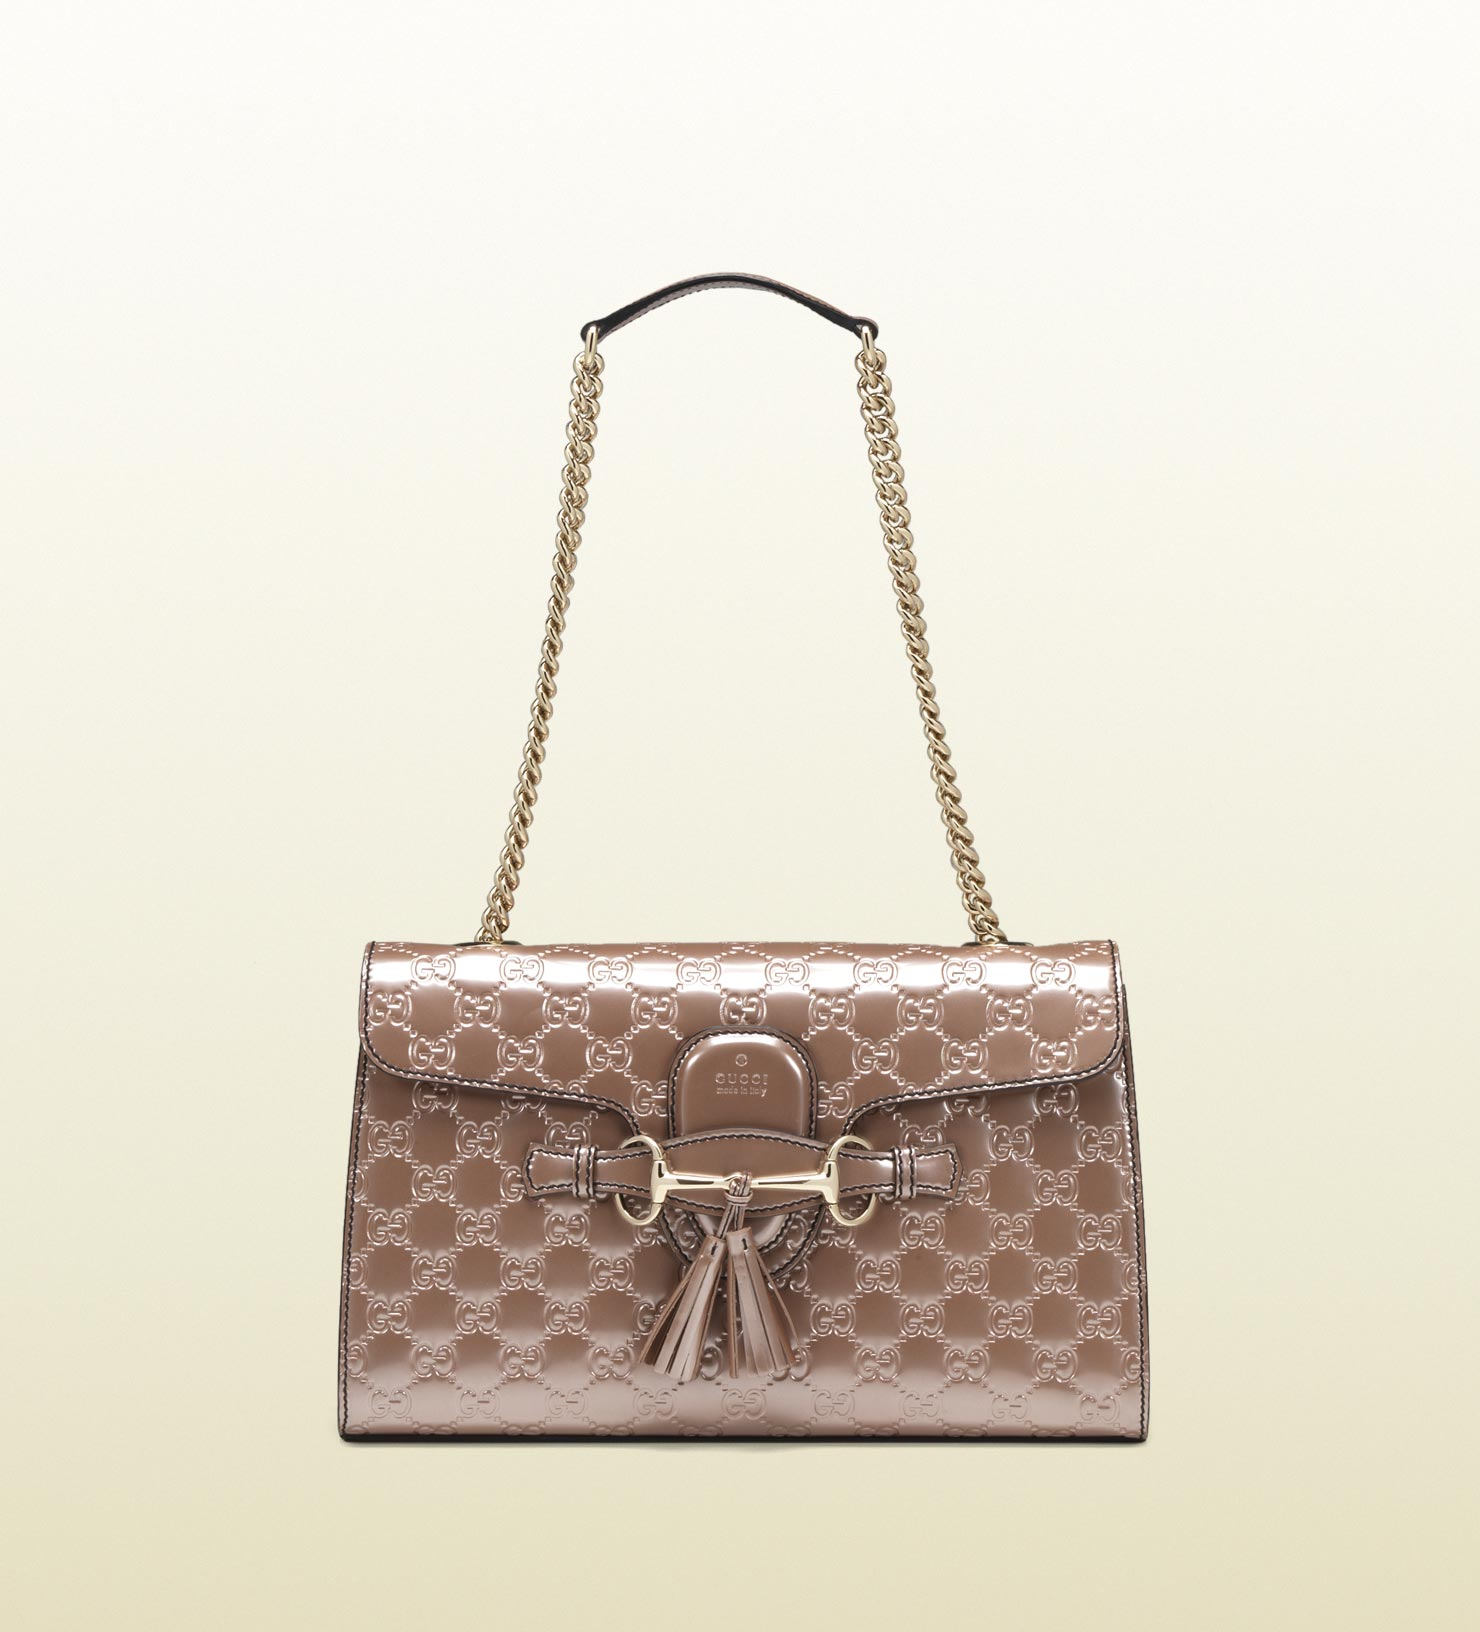 f78134ad3 Gucci Emily Light Pink Shiny Microguccissima Chain Shoulder Bag in ...